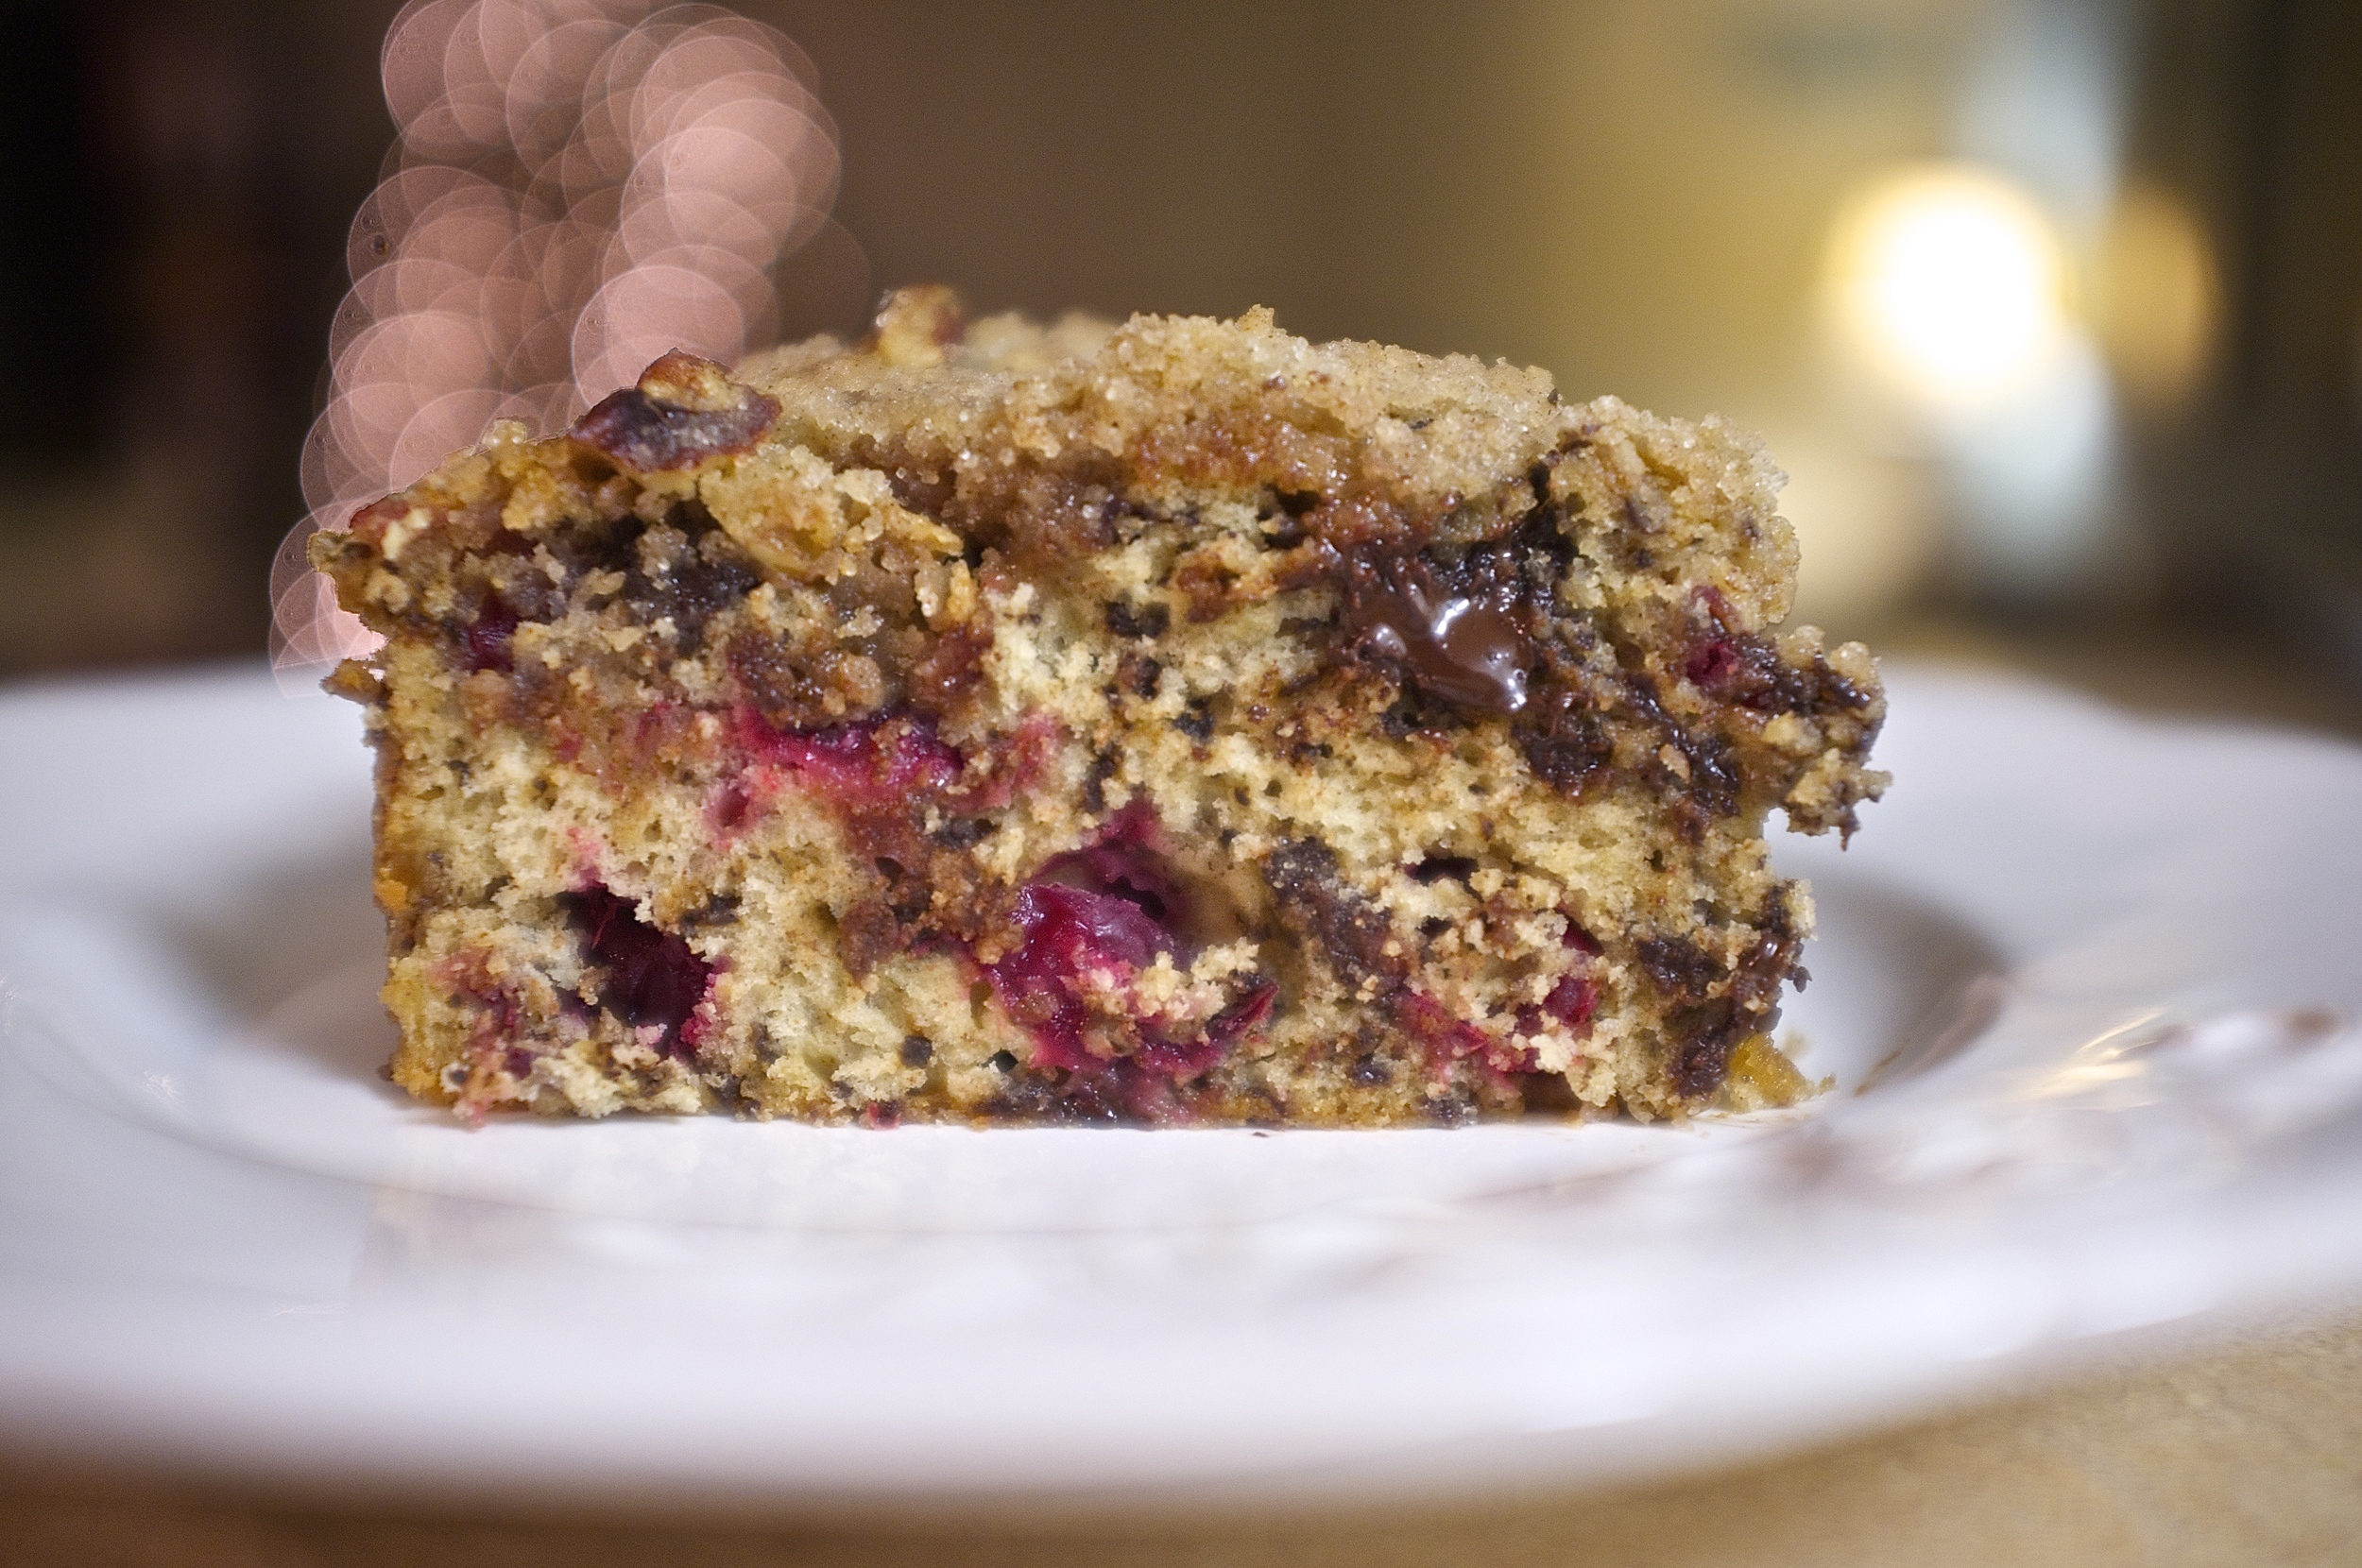 Dark Chocolate Cranberry Crumble Cake | Kneading Home